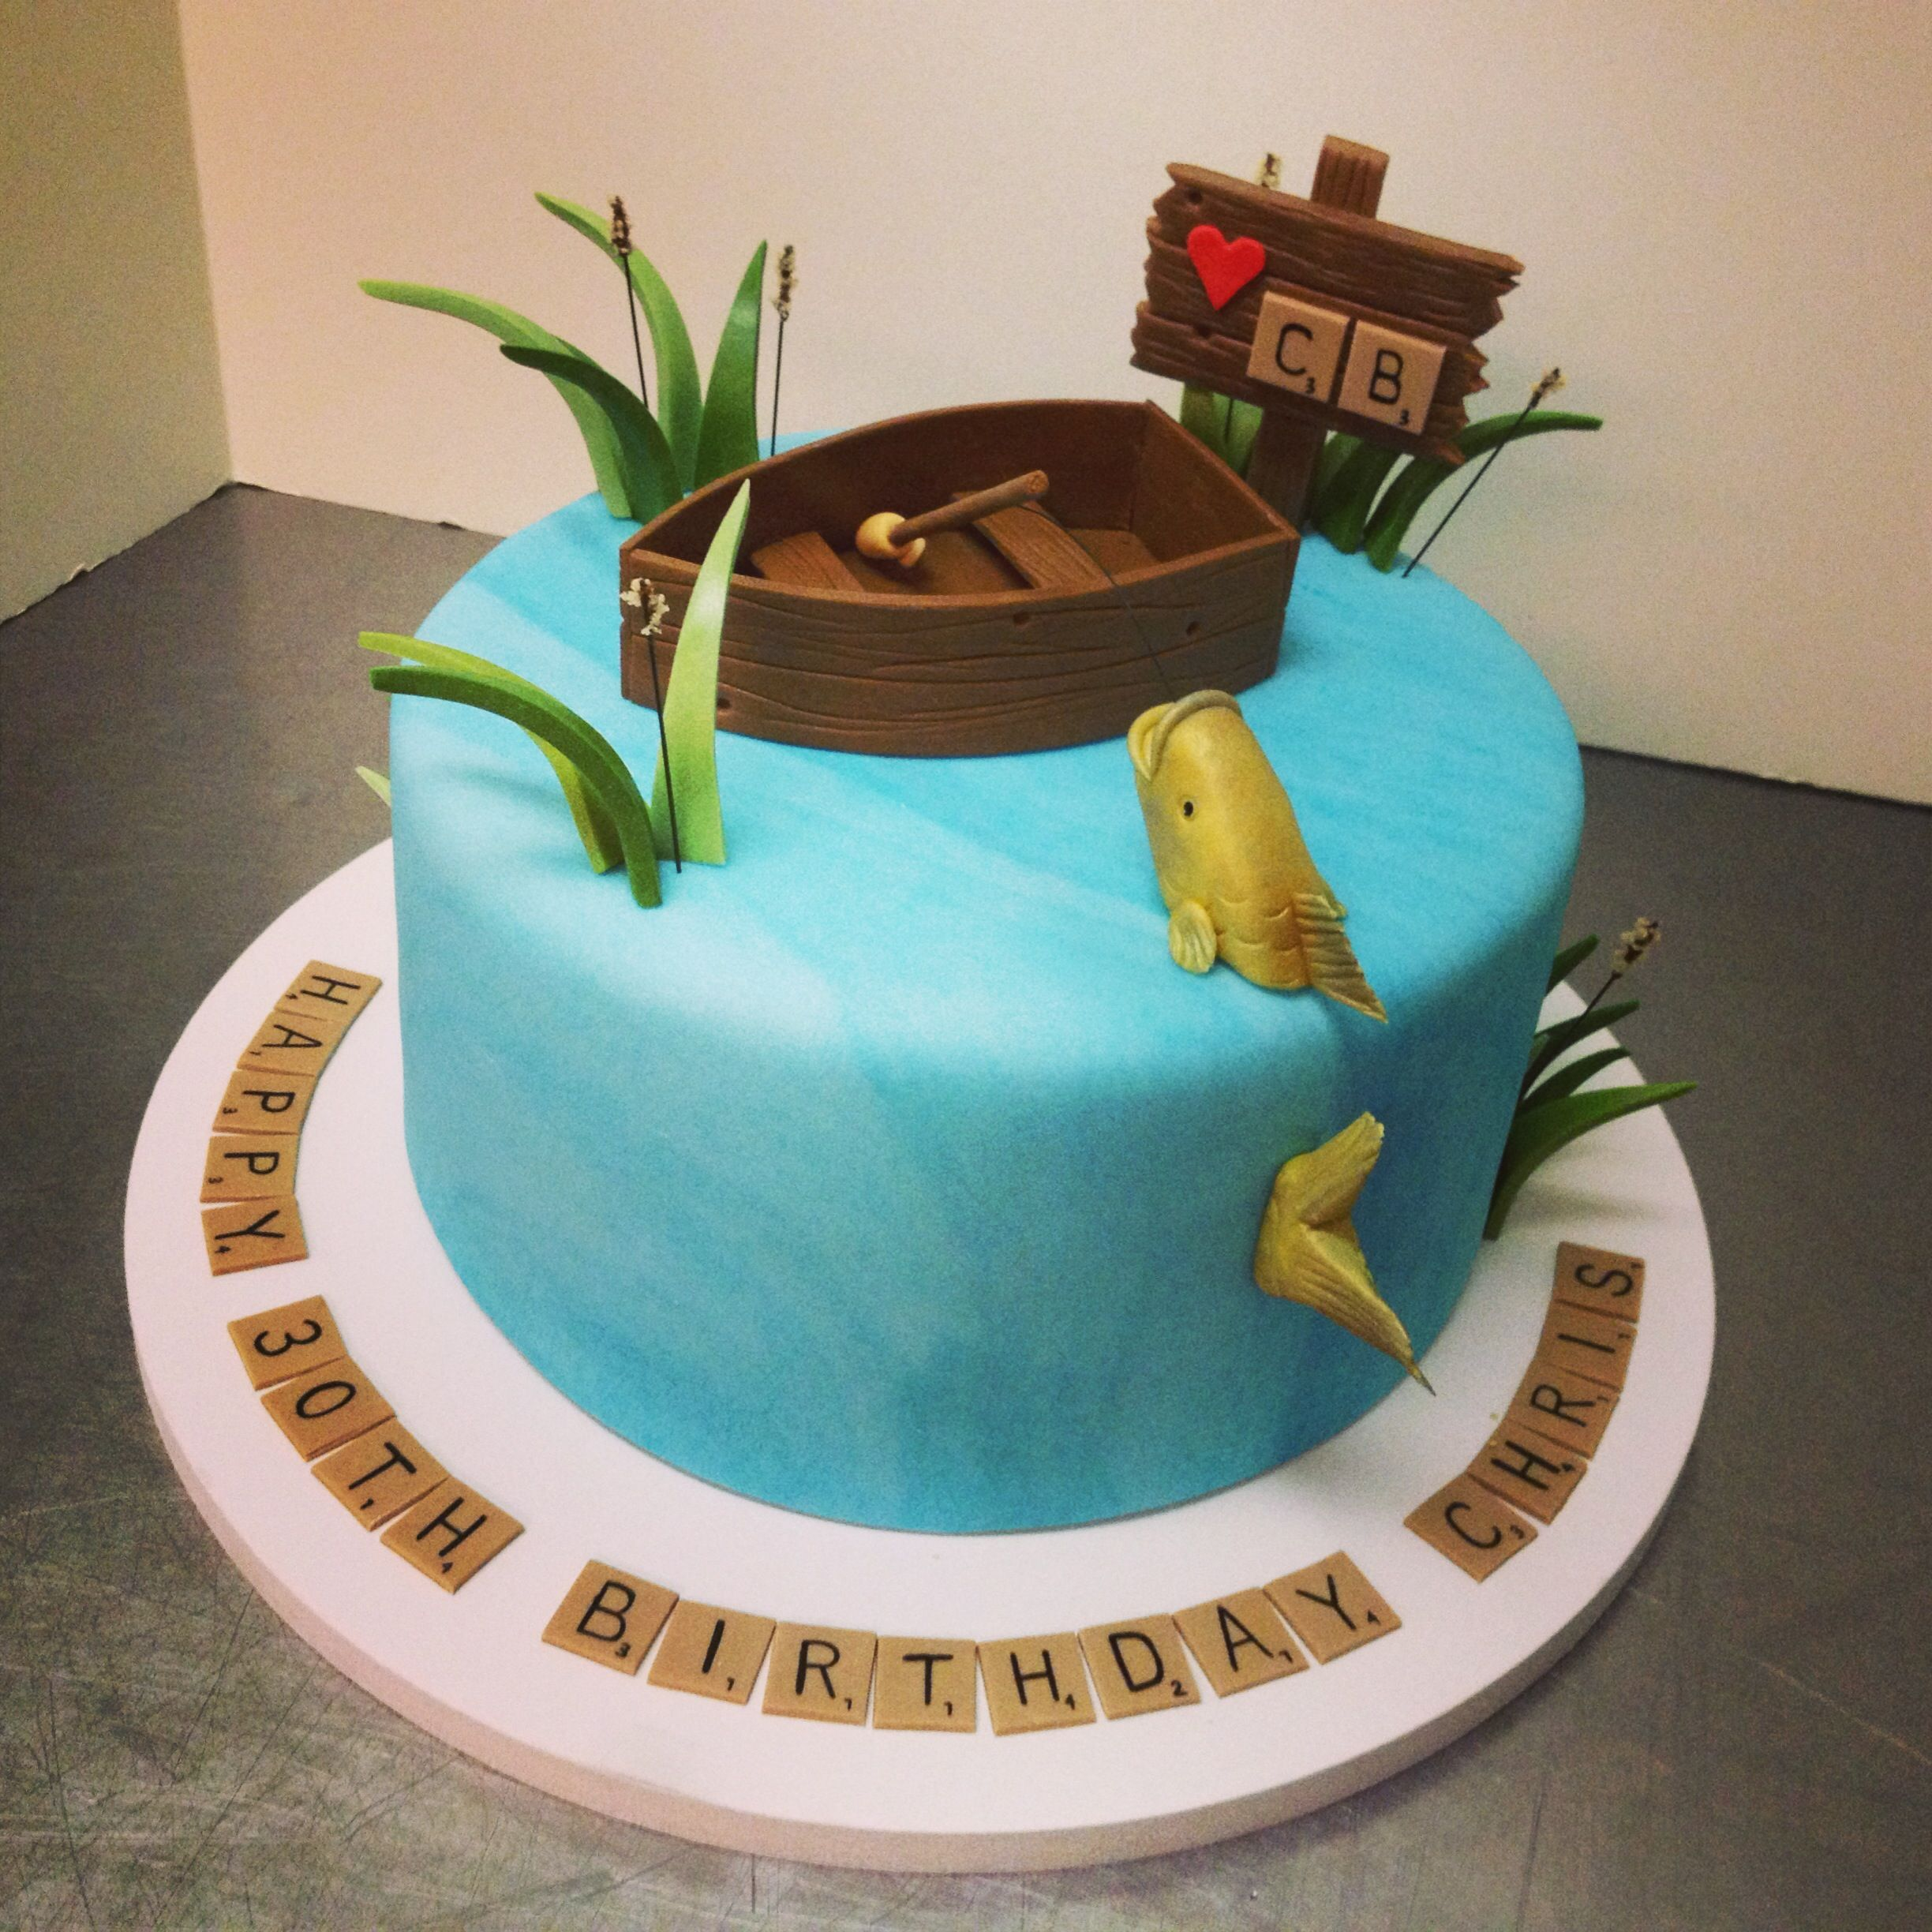 Fishing Wedding Ideas: Fishing Theme Cake With Scrabble Pieces As The Message